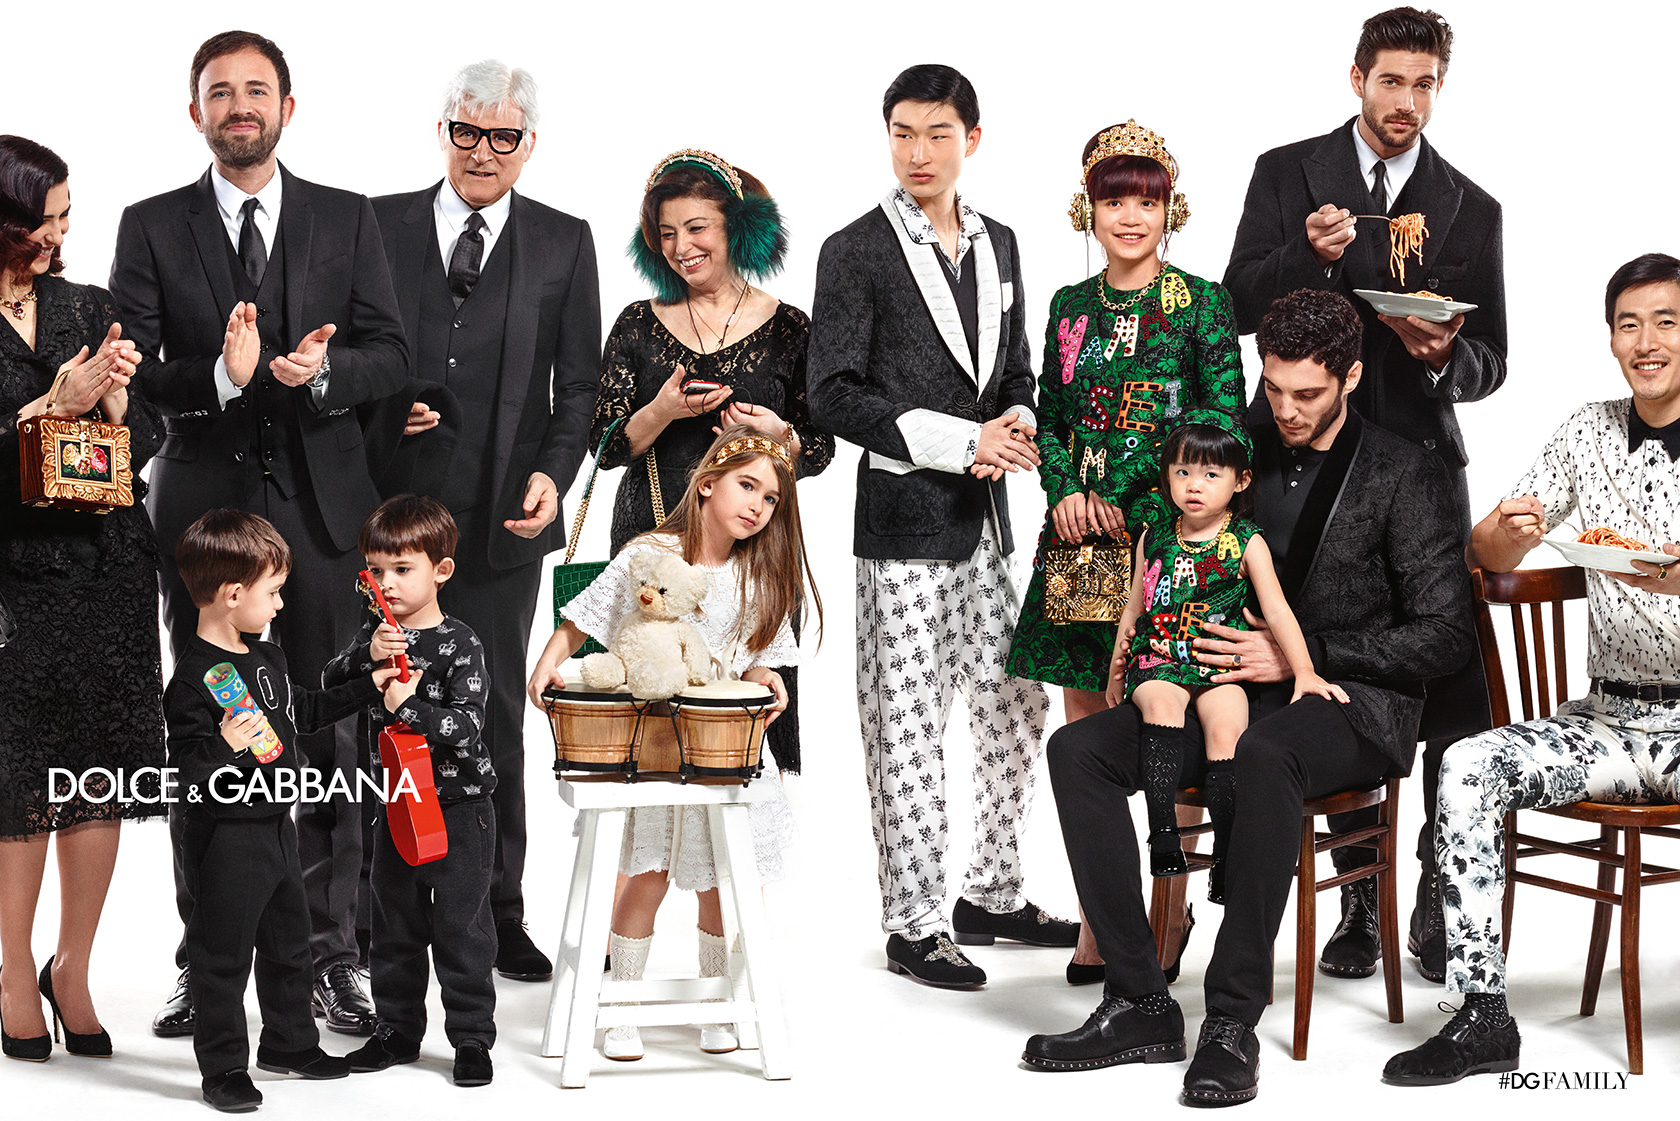 dolce-and-gabbana-winter-2016-child-advertising-campaign-04-zoom